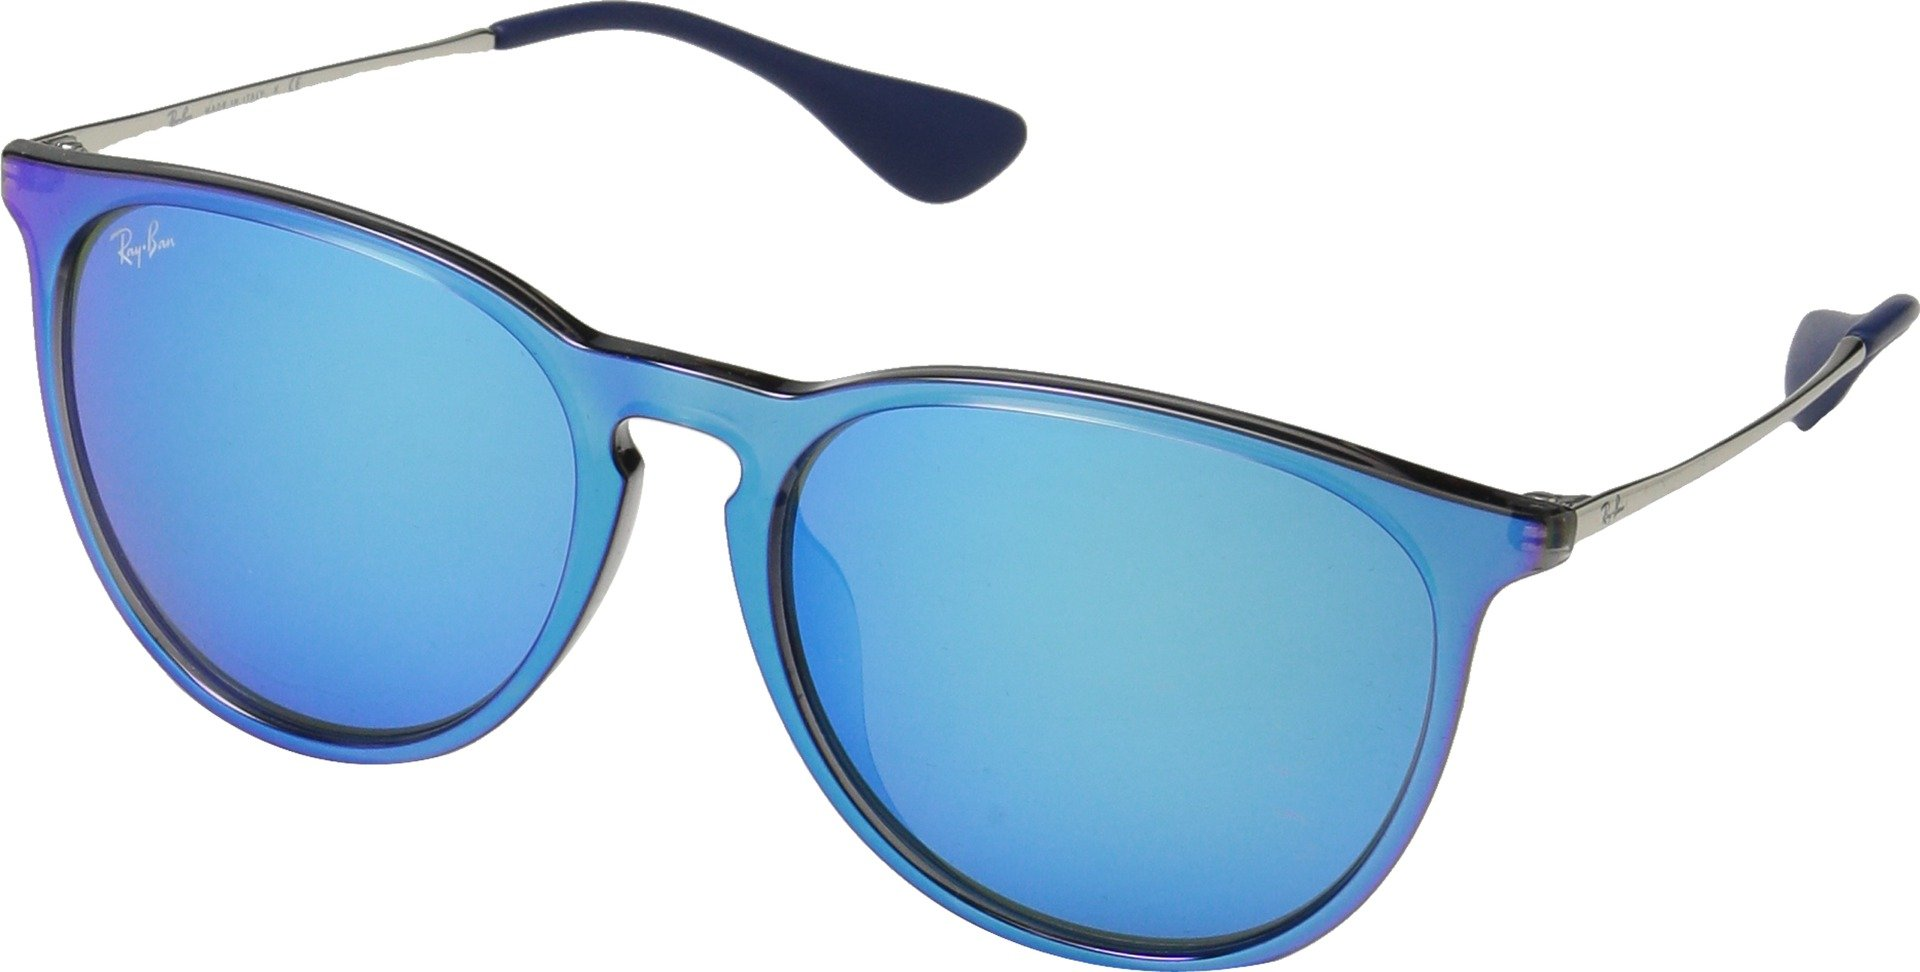 Ray-Ban Unisex 0RB4171F Transparent Grey/Light Blue External One Size by Ray-Ban